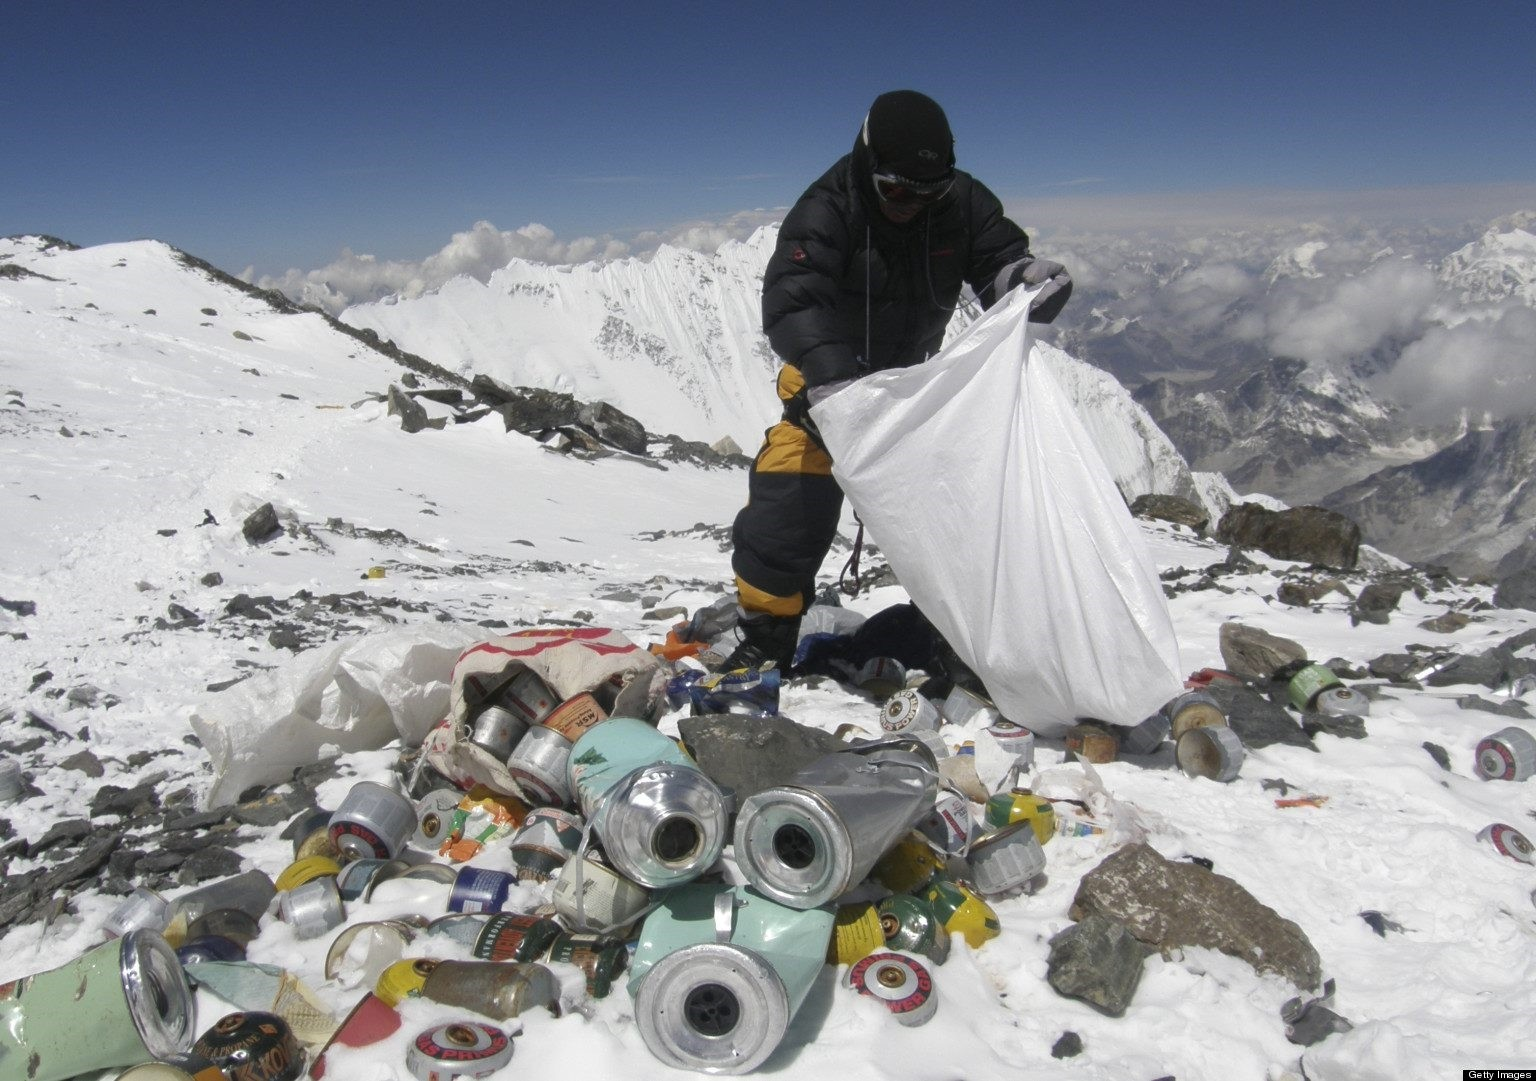 A Nepalese sherpa collects garbage left by climbers on Mount Everest.